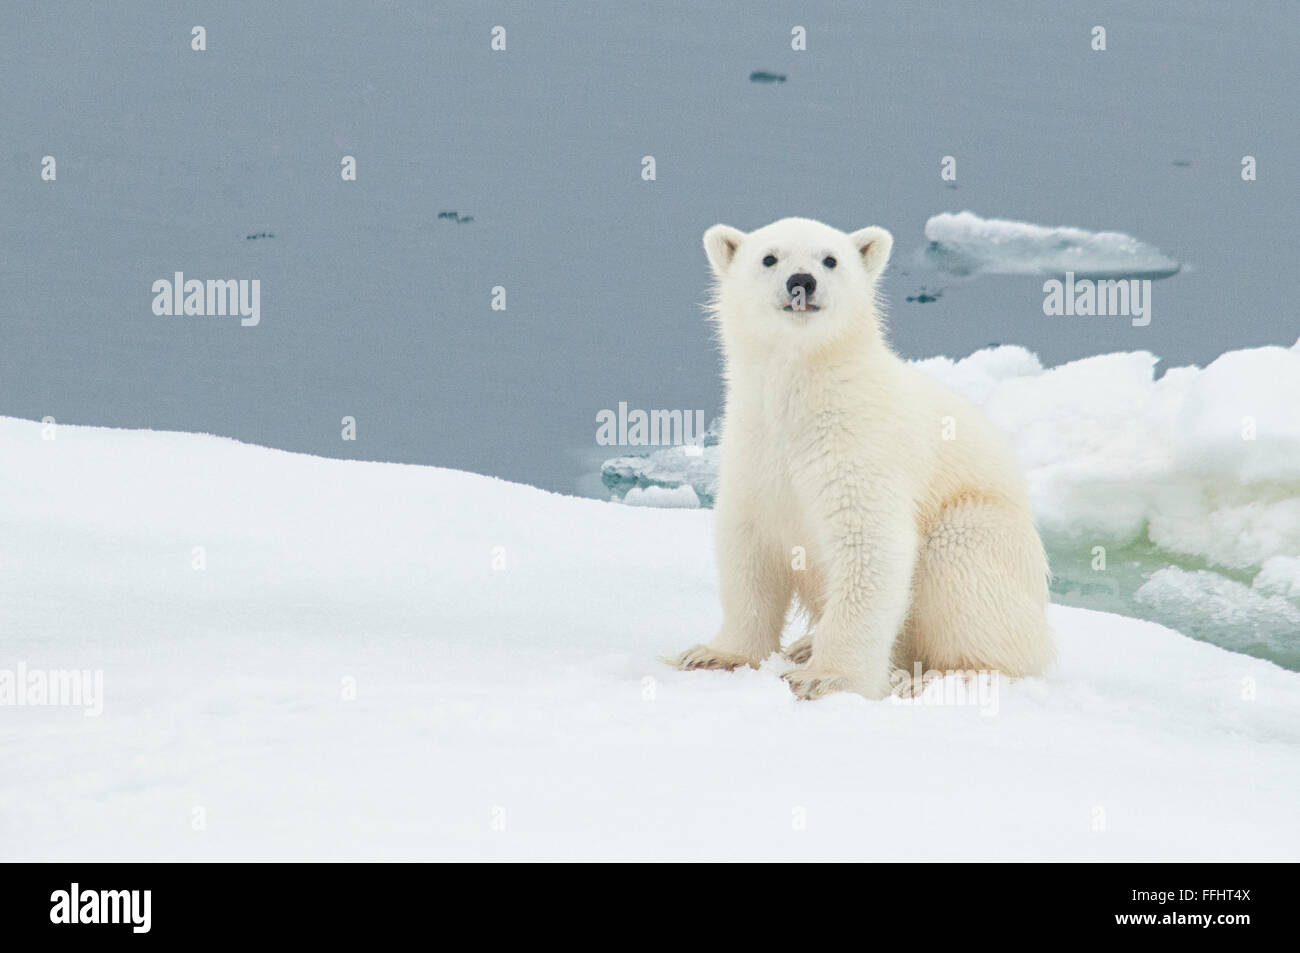 cute-little-polar-bear-cub-ursus-maritimus-sitting-on-an-ice-floe-FFHT4X.jpg